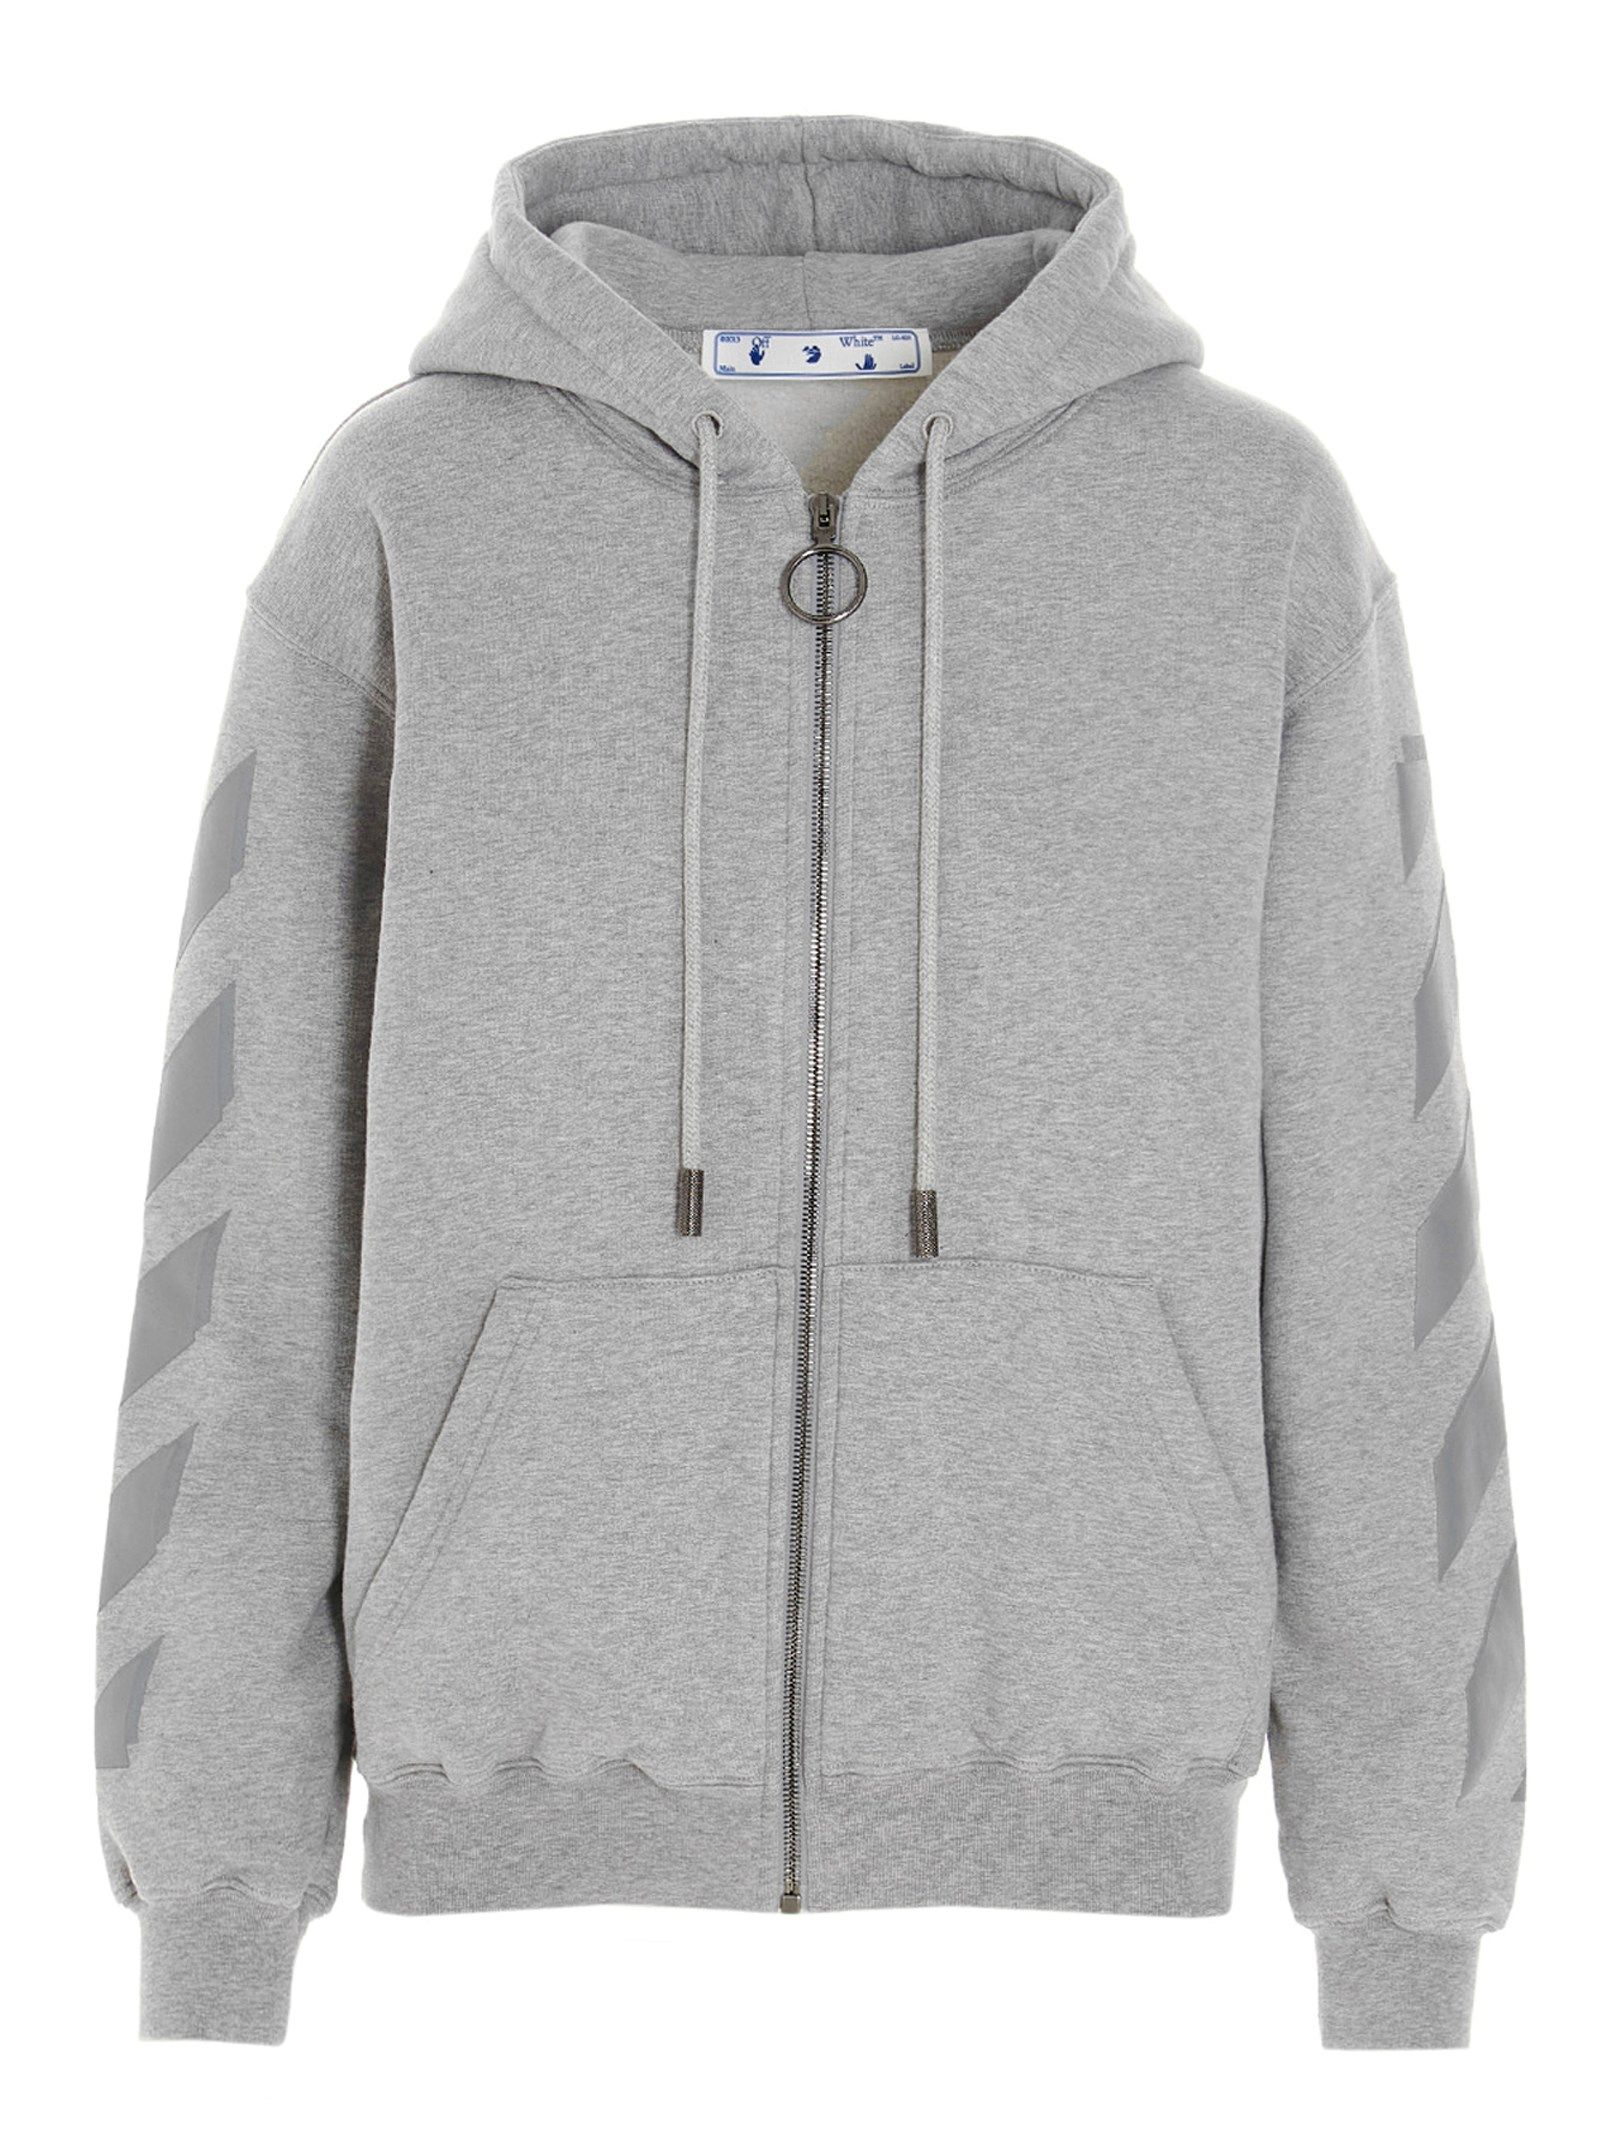 Off-White Sweatshirts OFF-WHITE WOMEN'S OWBE005S21JER0010808 GREY OTHER MATERIALS SWEATSHIRT